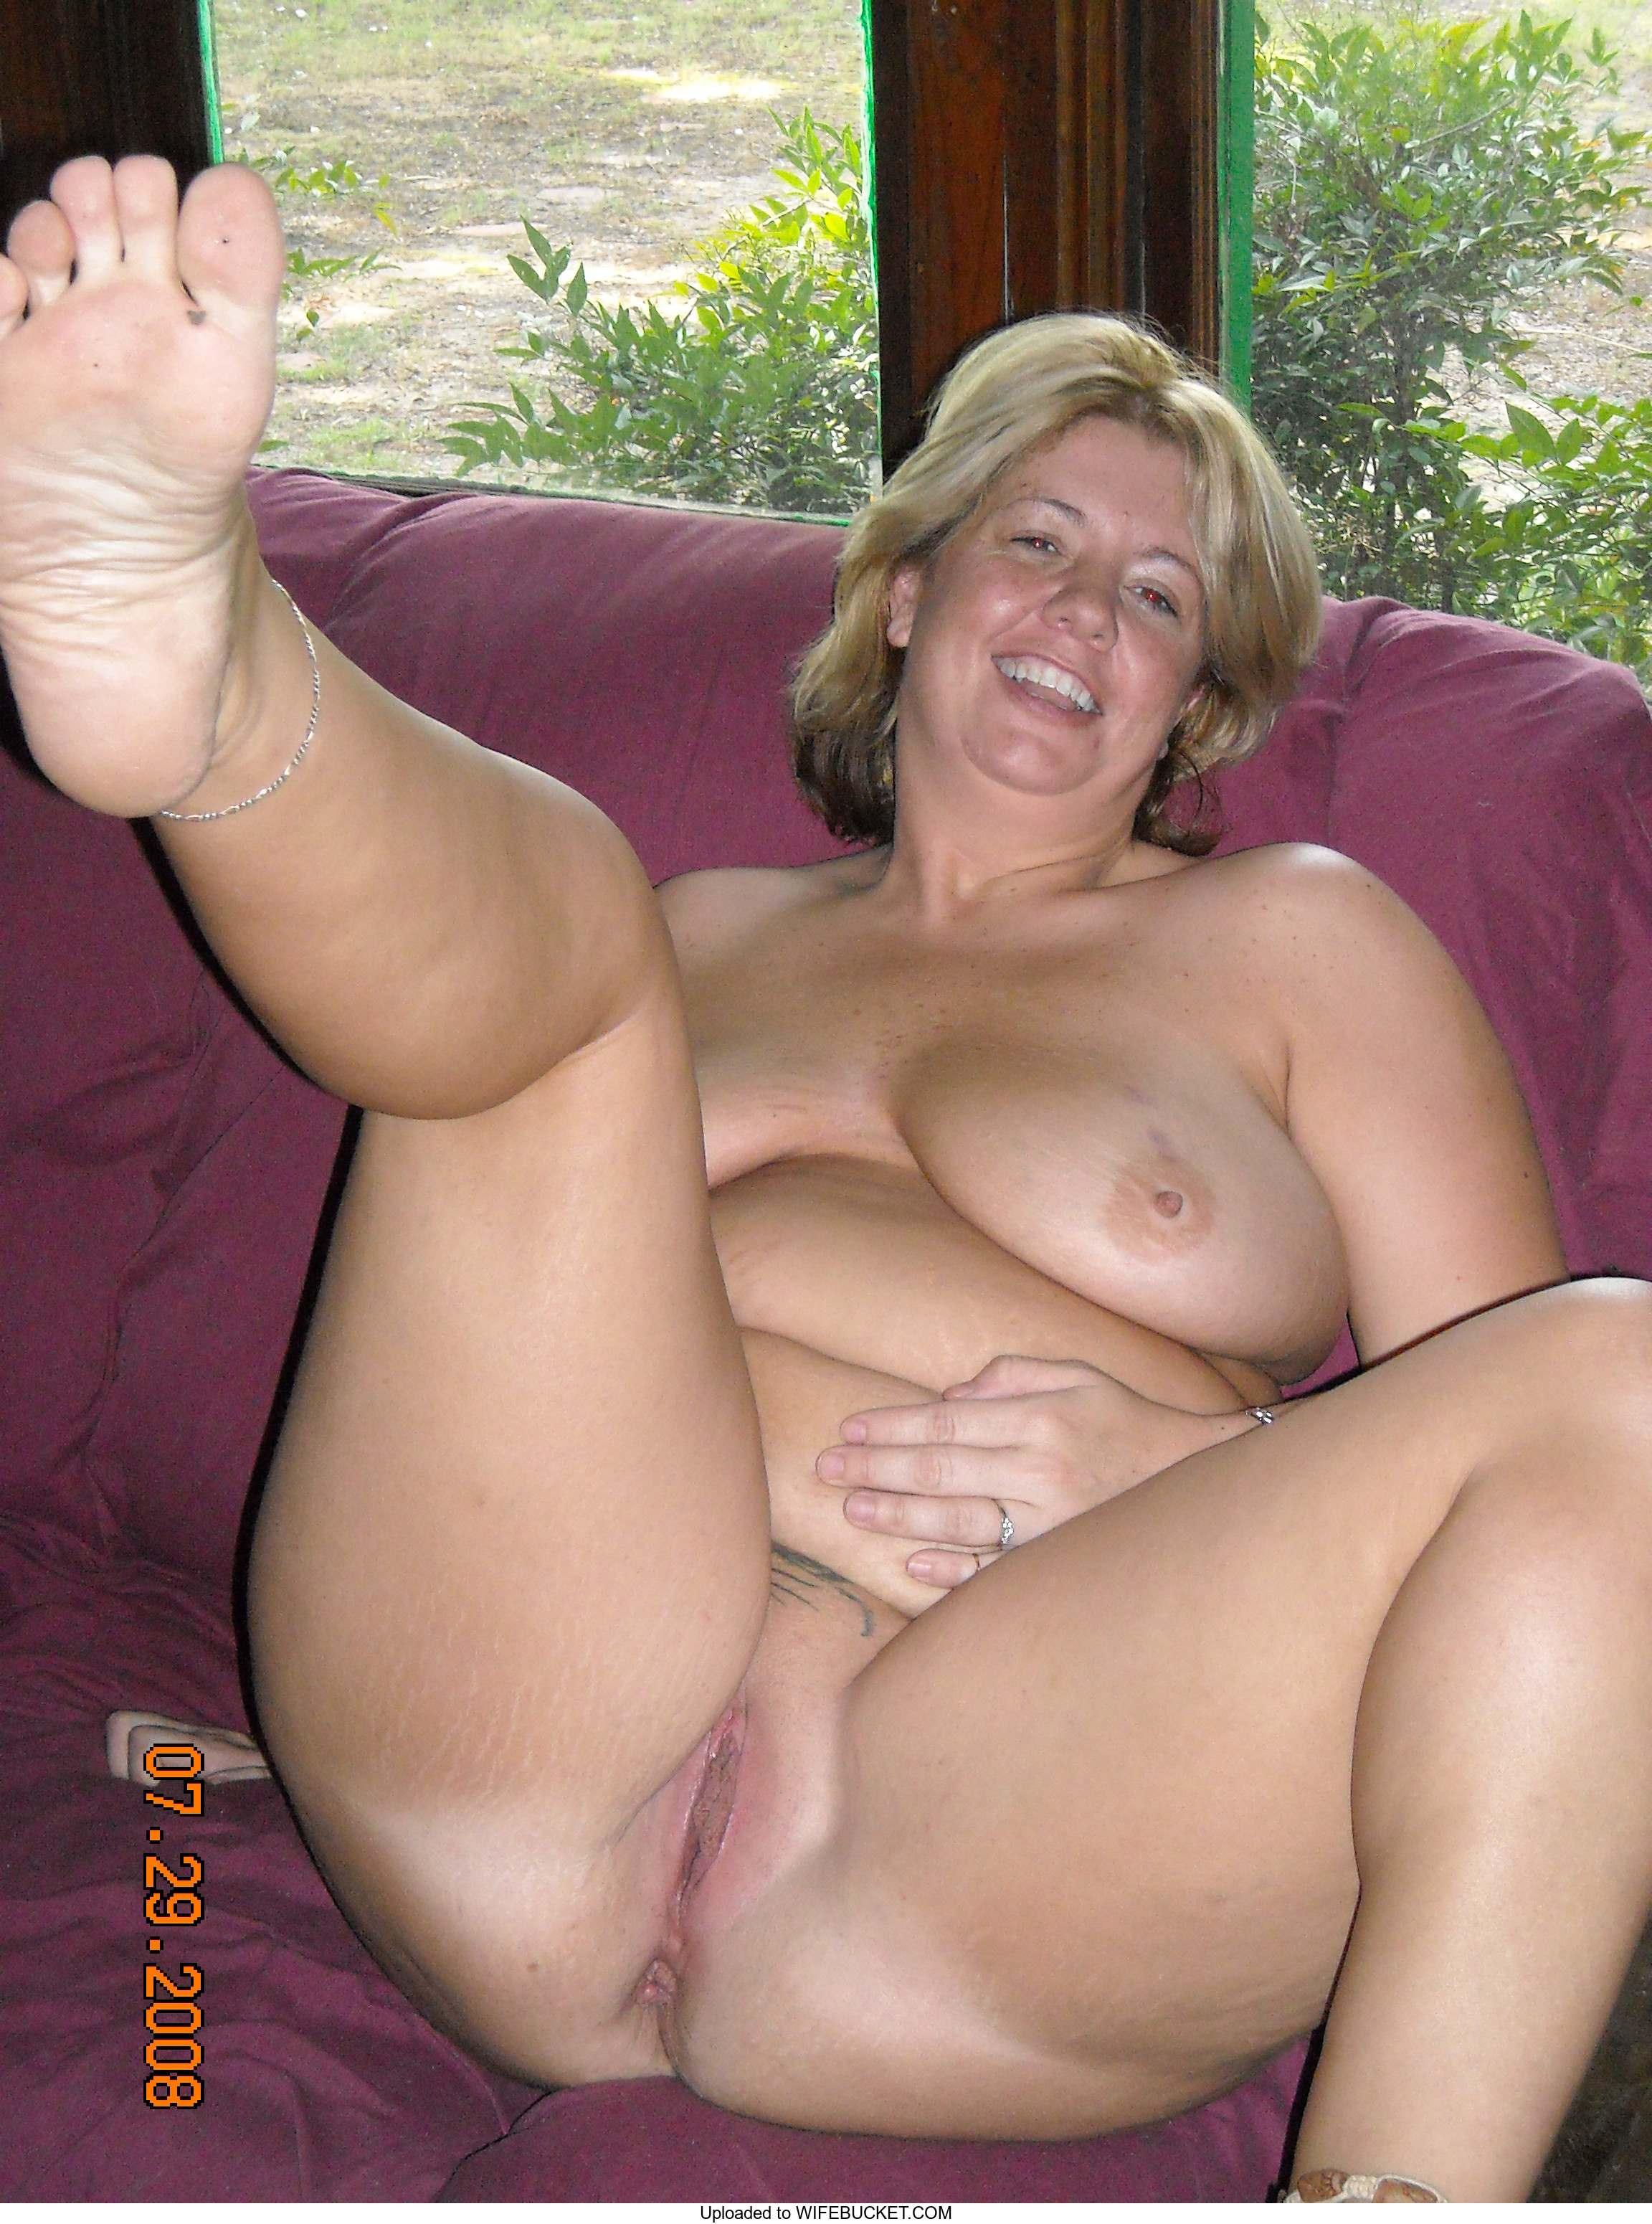 Nude Matures  Wifebucket  Offical Milf Blog-1750